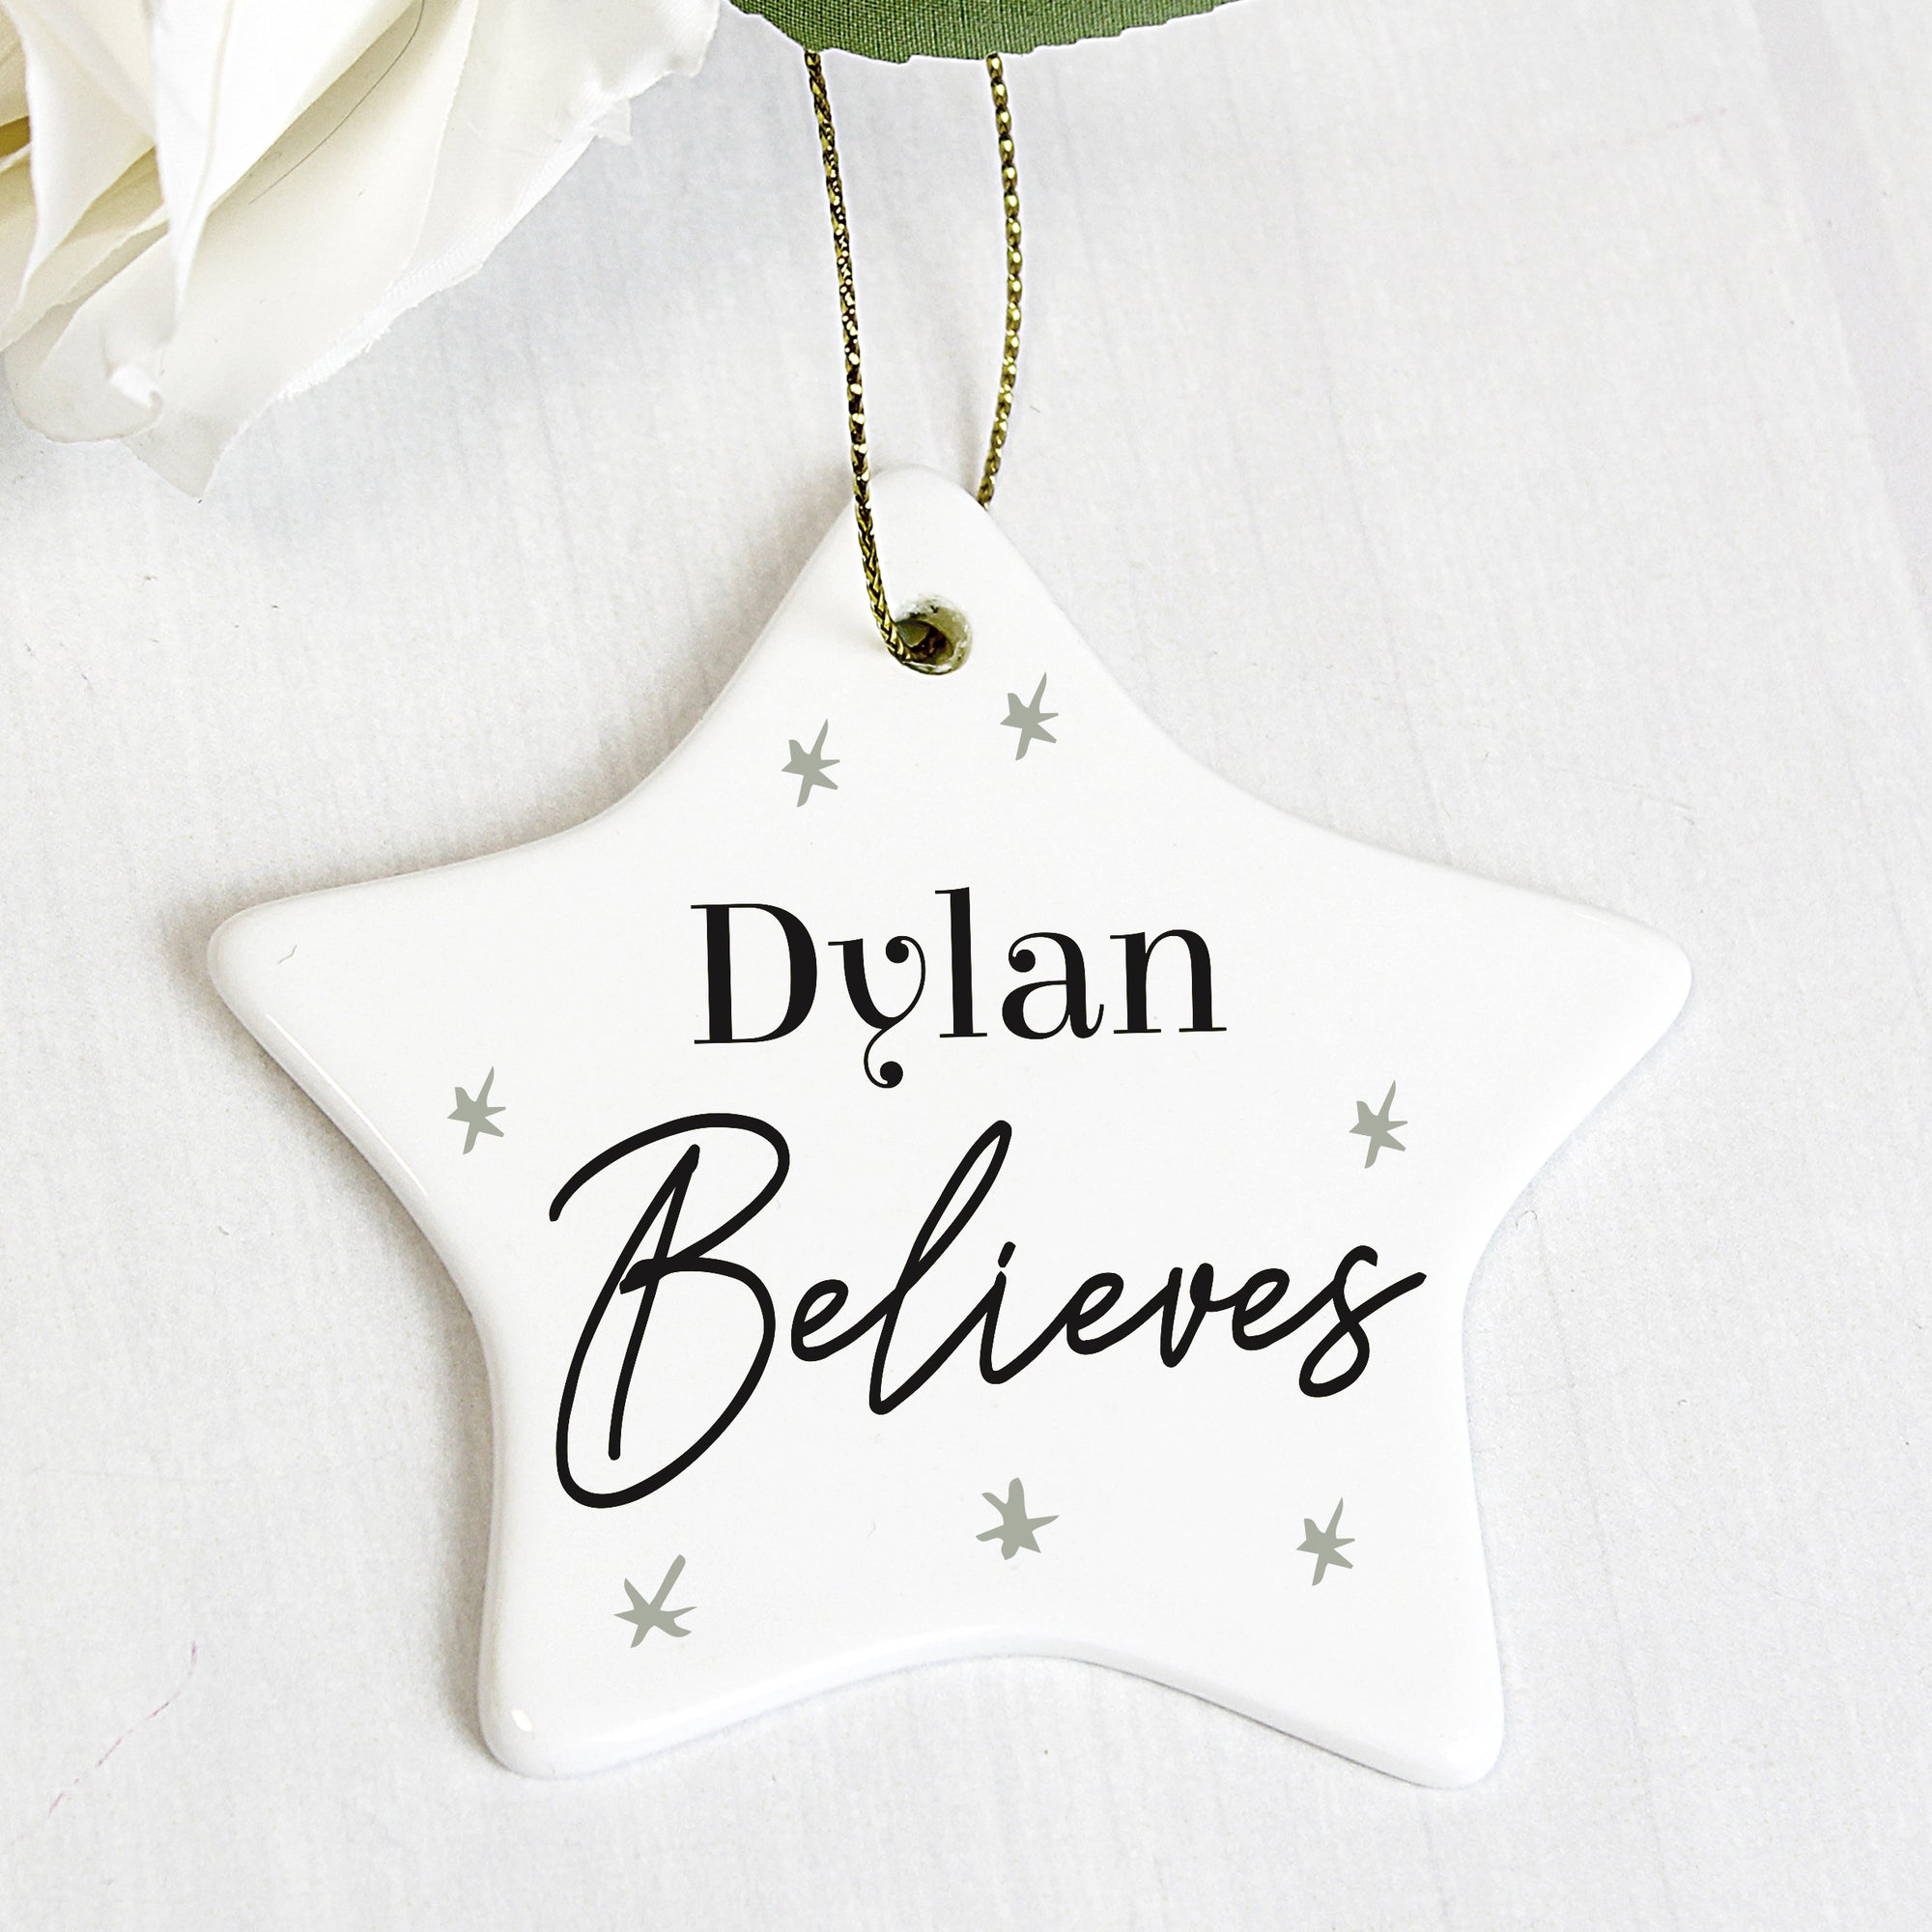 White ceramic star shaped Christmas decoration that comes with a string ready to hang. The decoration can be personalised with a name of up to 12 characters on the front followed by the word 'Believes'. The star has a small number of grey stars printed ono the front in a minimalistic hand drawn style.